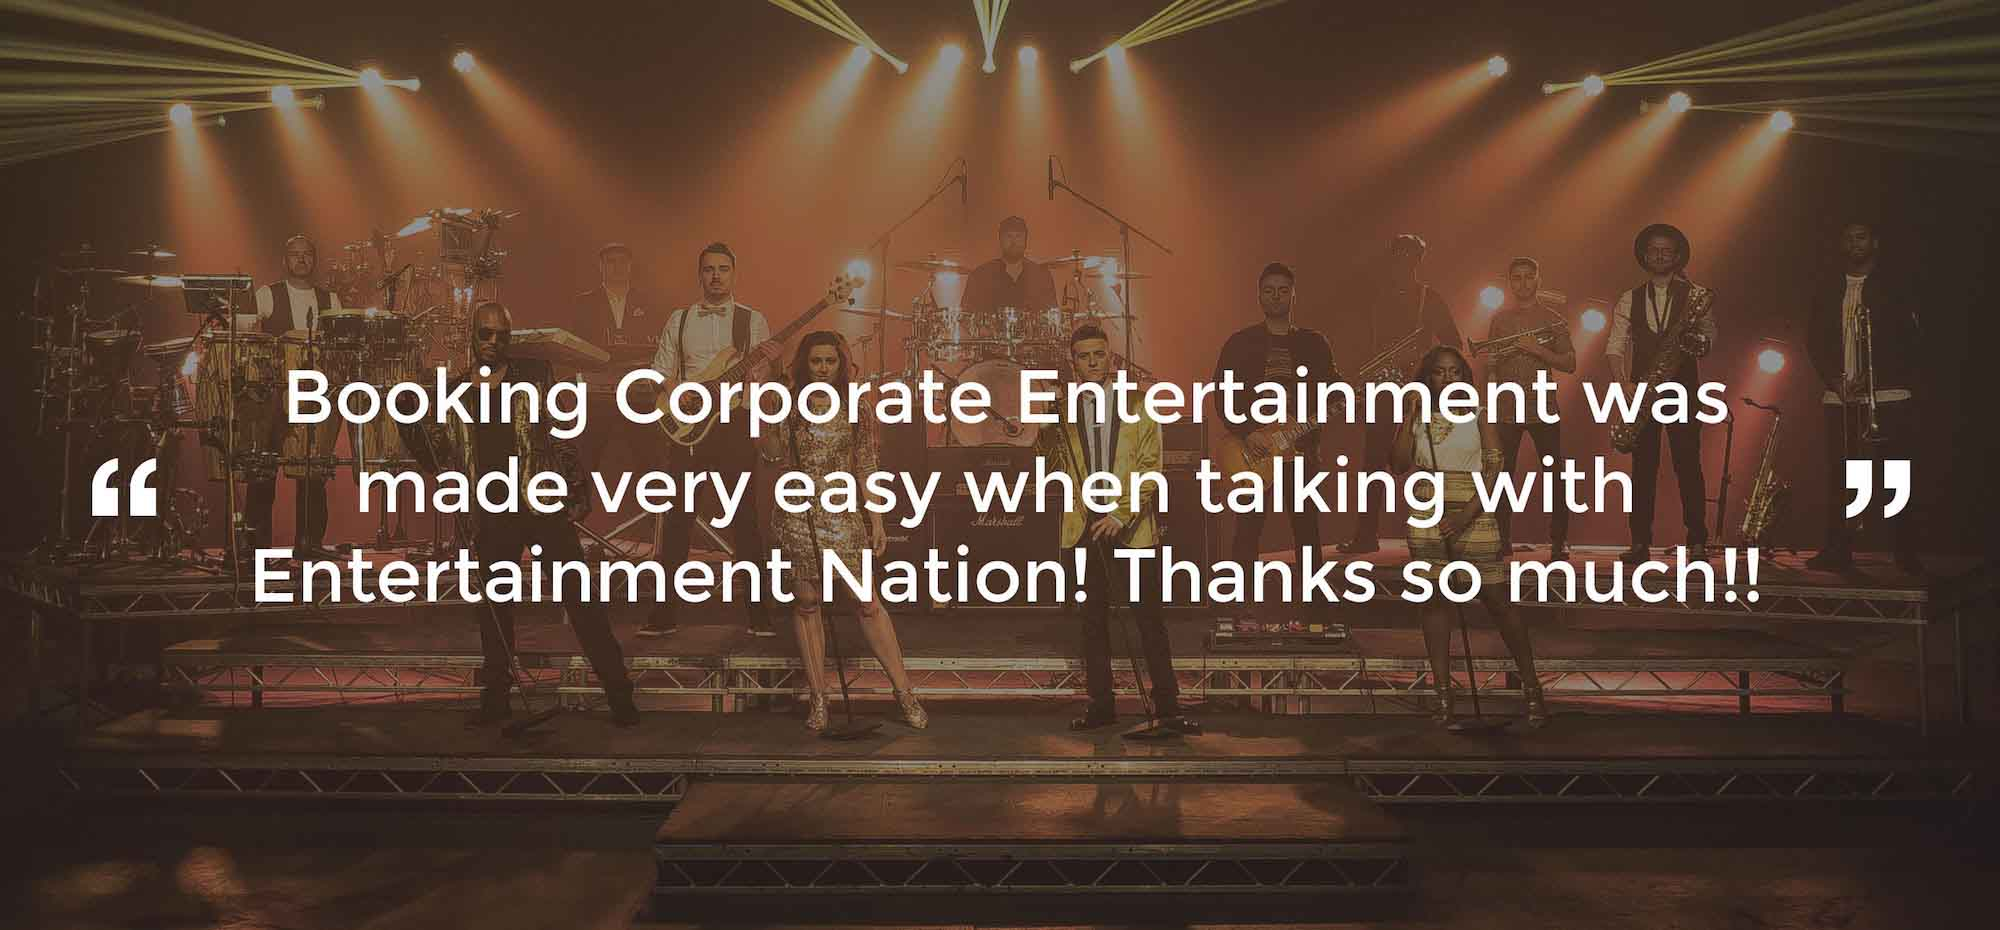 Client Review of Corporate Entertainment Essex